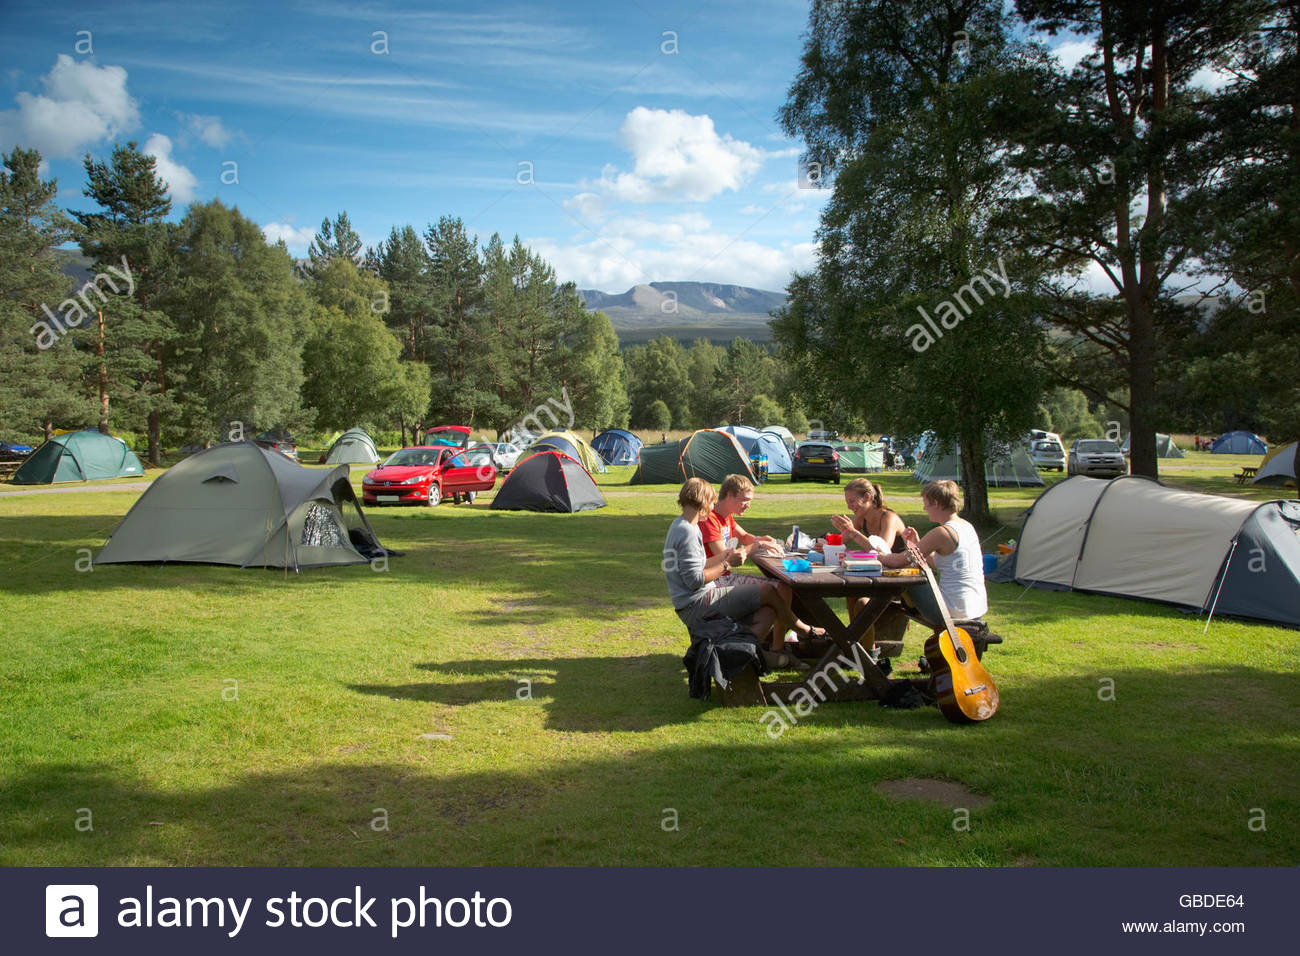 Enjoying a picnic at the campsite at Glenmore Forest Park near Aviemore, Highlands of Scotland. - Stock Image